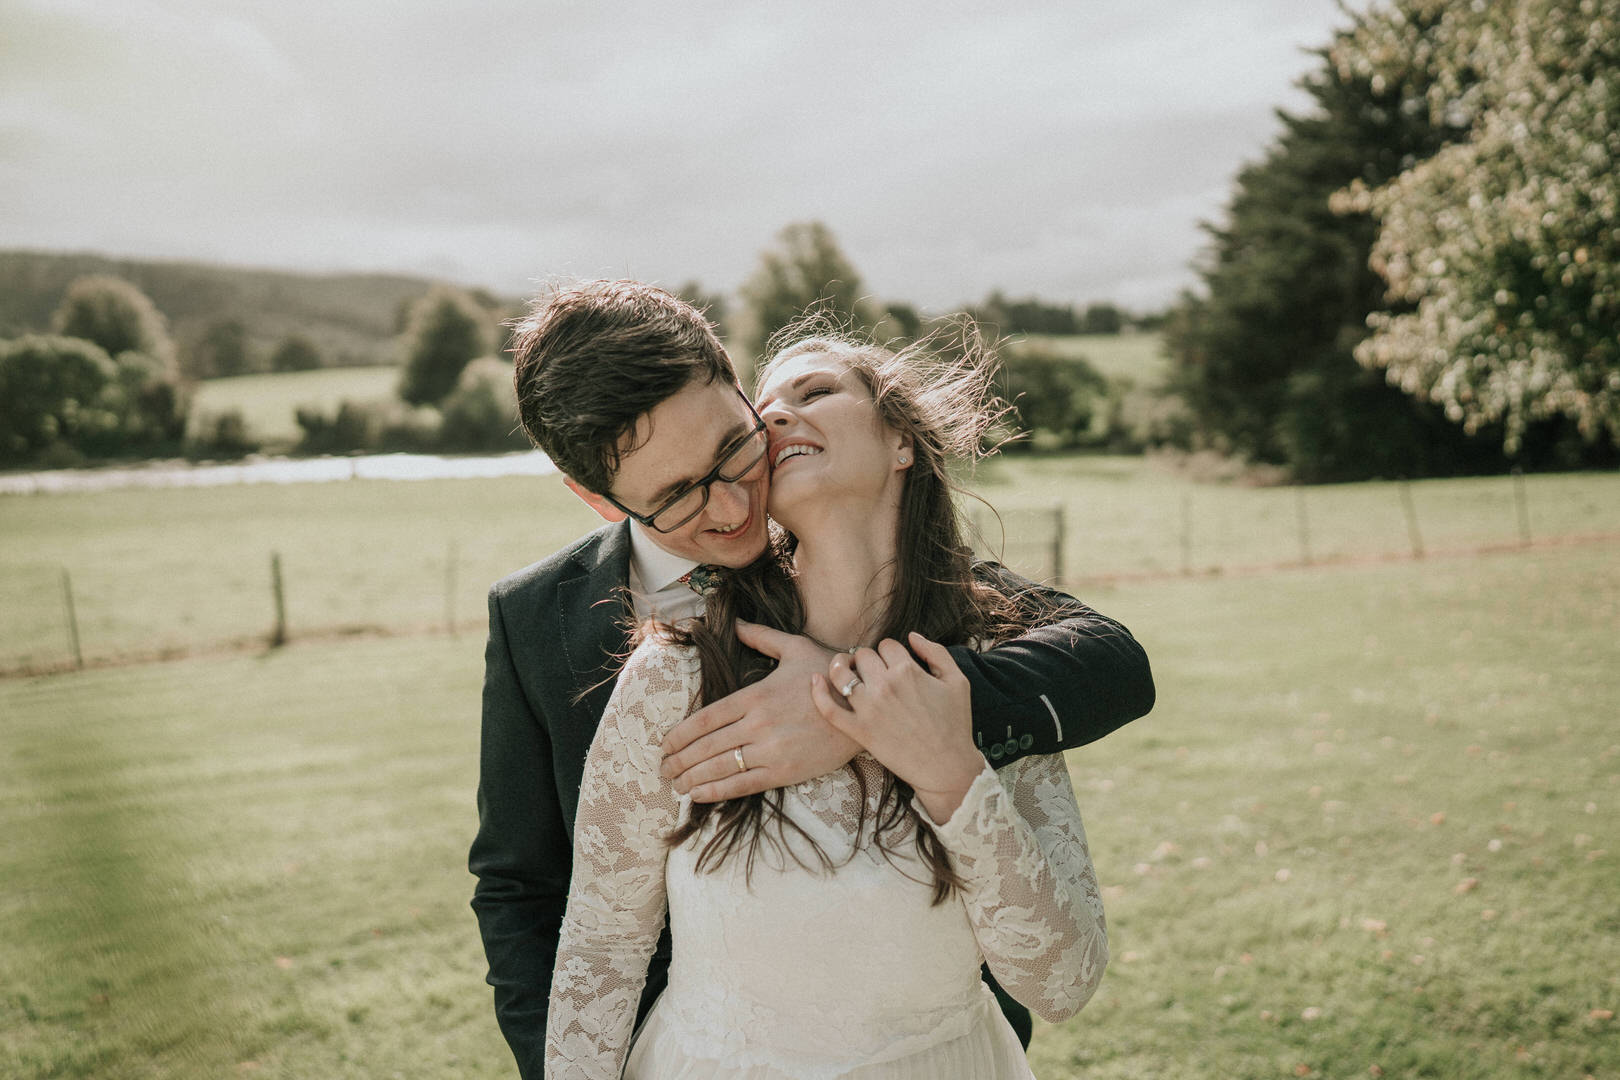 Planning Your Wedding - golden 10 you should be conscious of 2